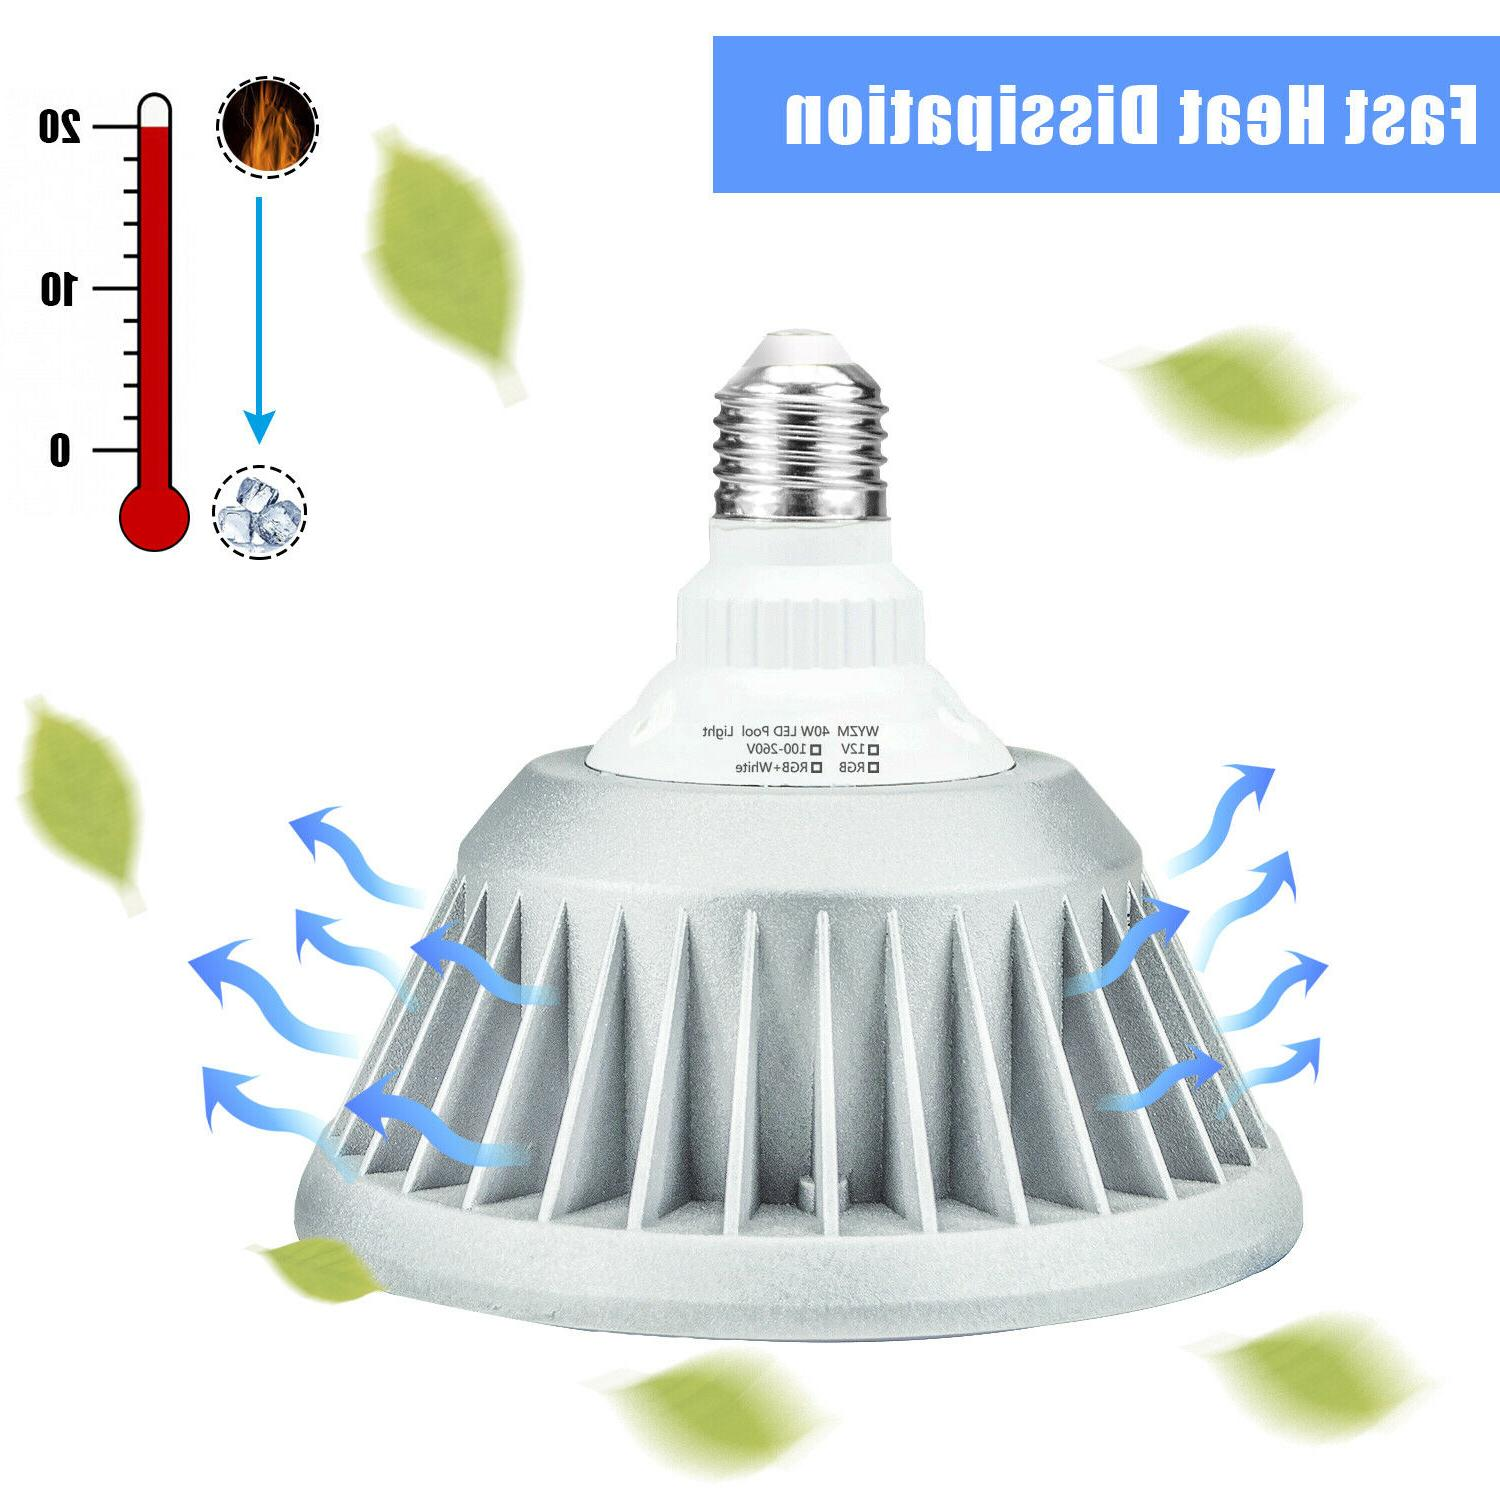 120V LED Light Replacement for 500W Pentair Hayward Fixture